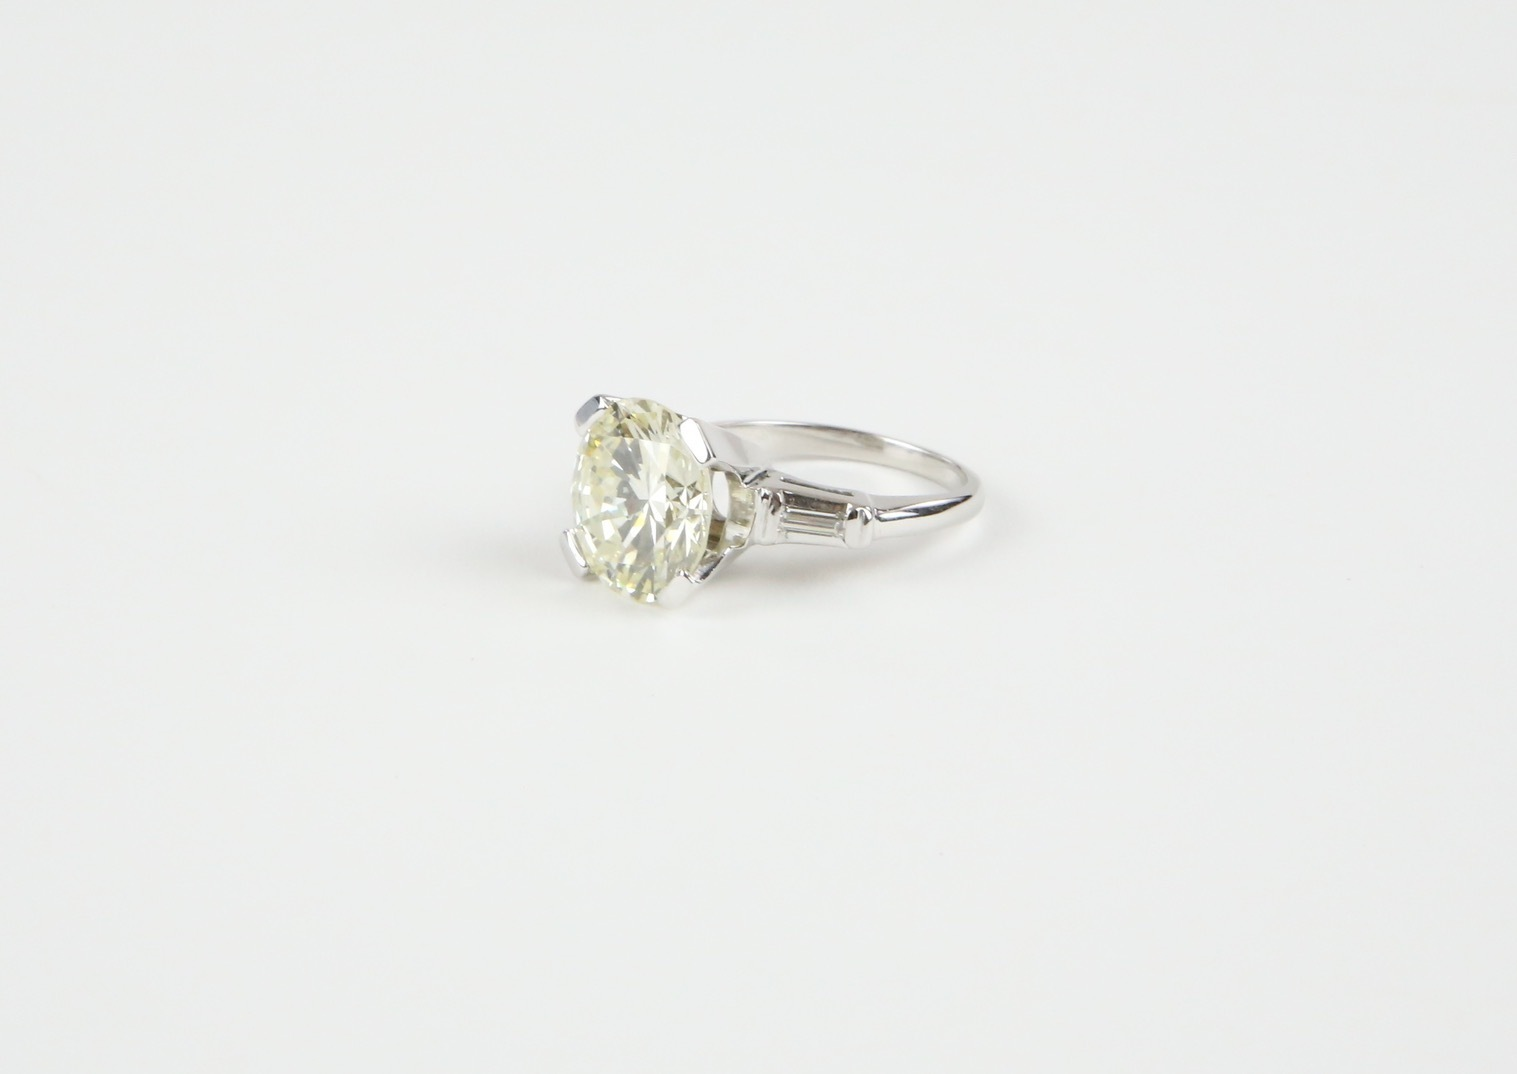 G.I.A. CERTIFIED 5.10 CT. DIAMOND AND GOLD RING | Sold for $22,800